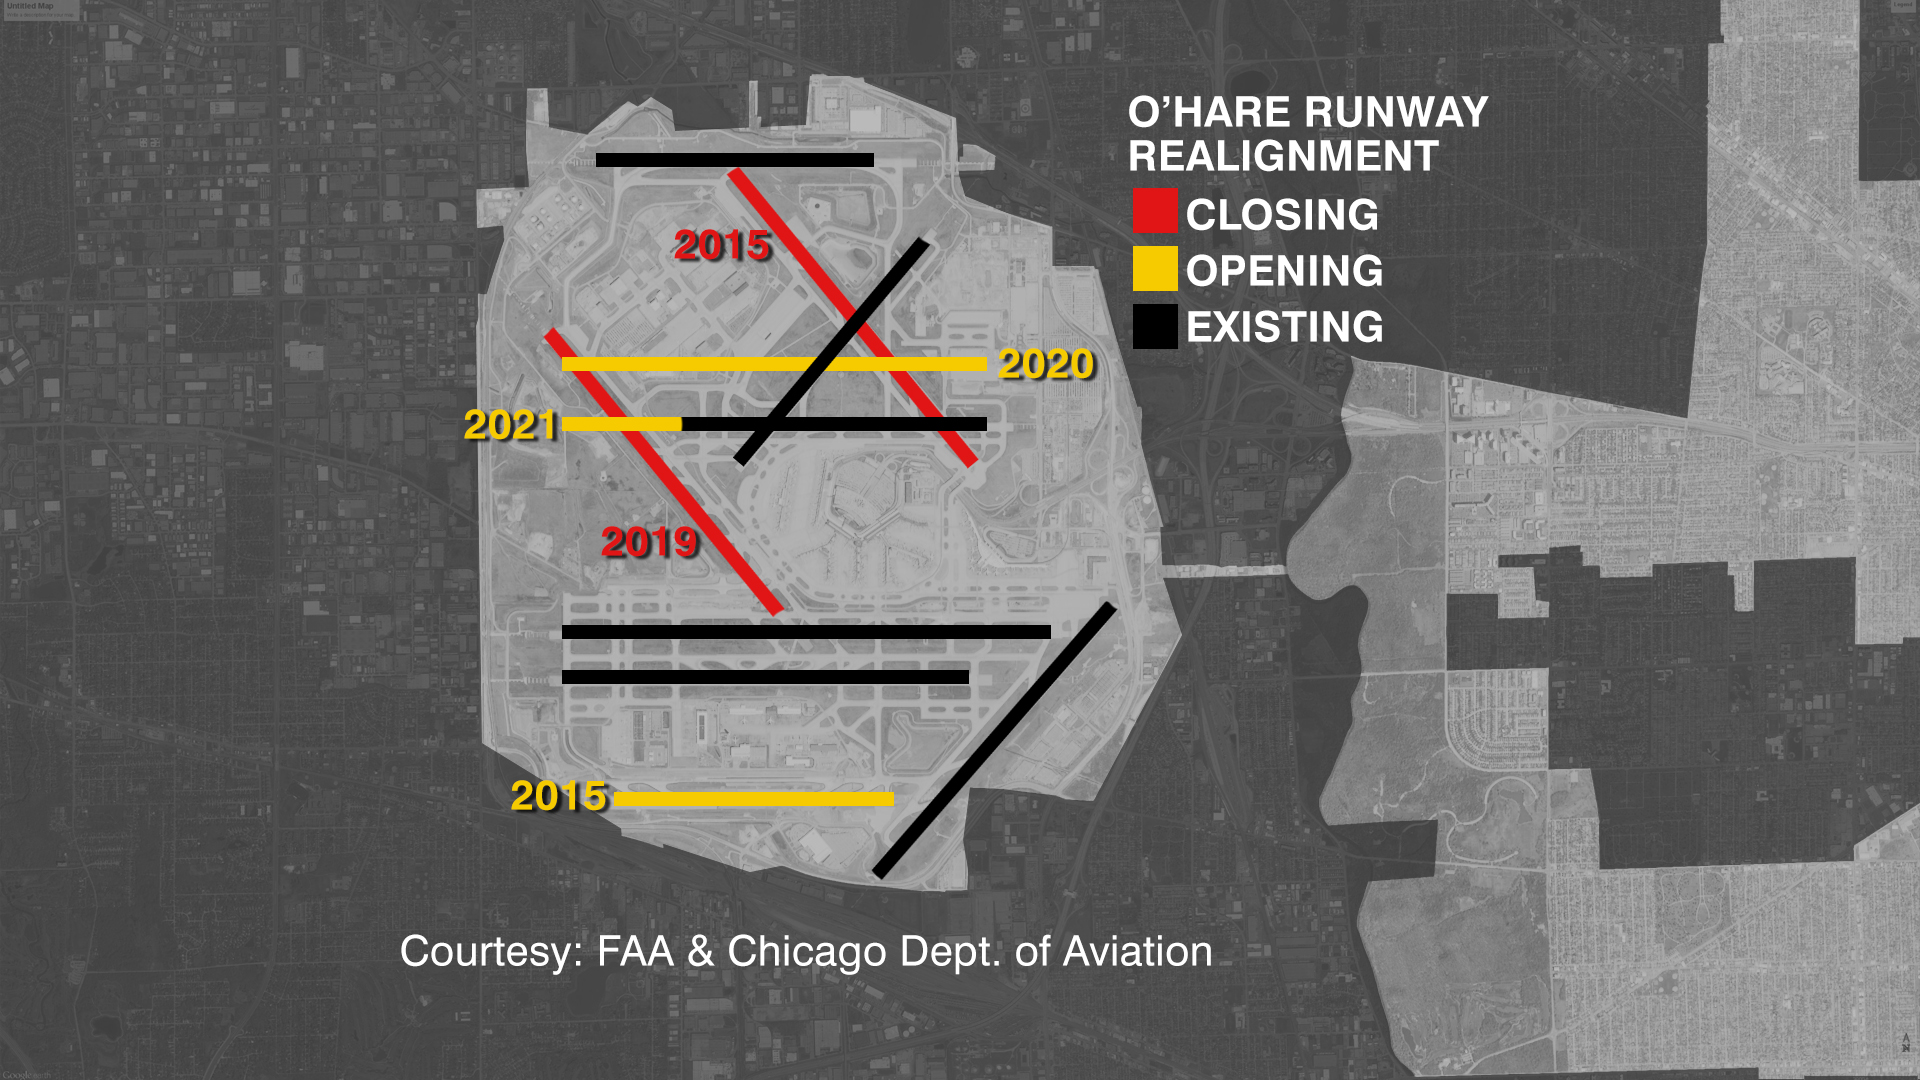 Map shows changes coming to O'Hare runways.